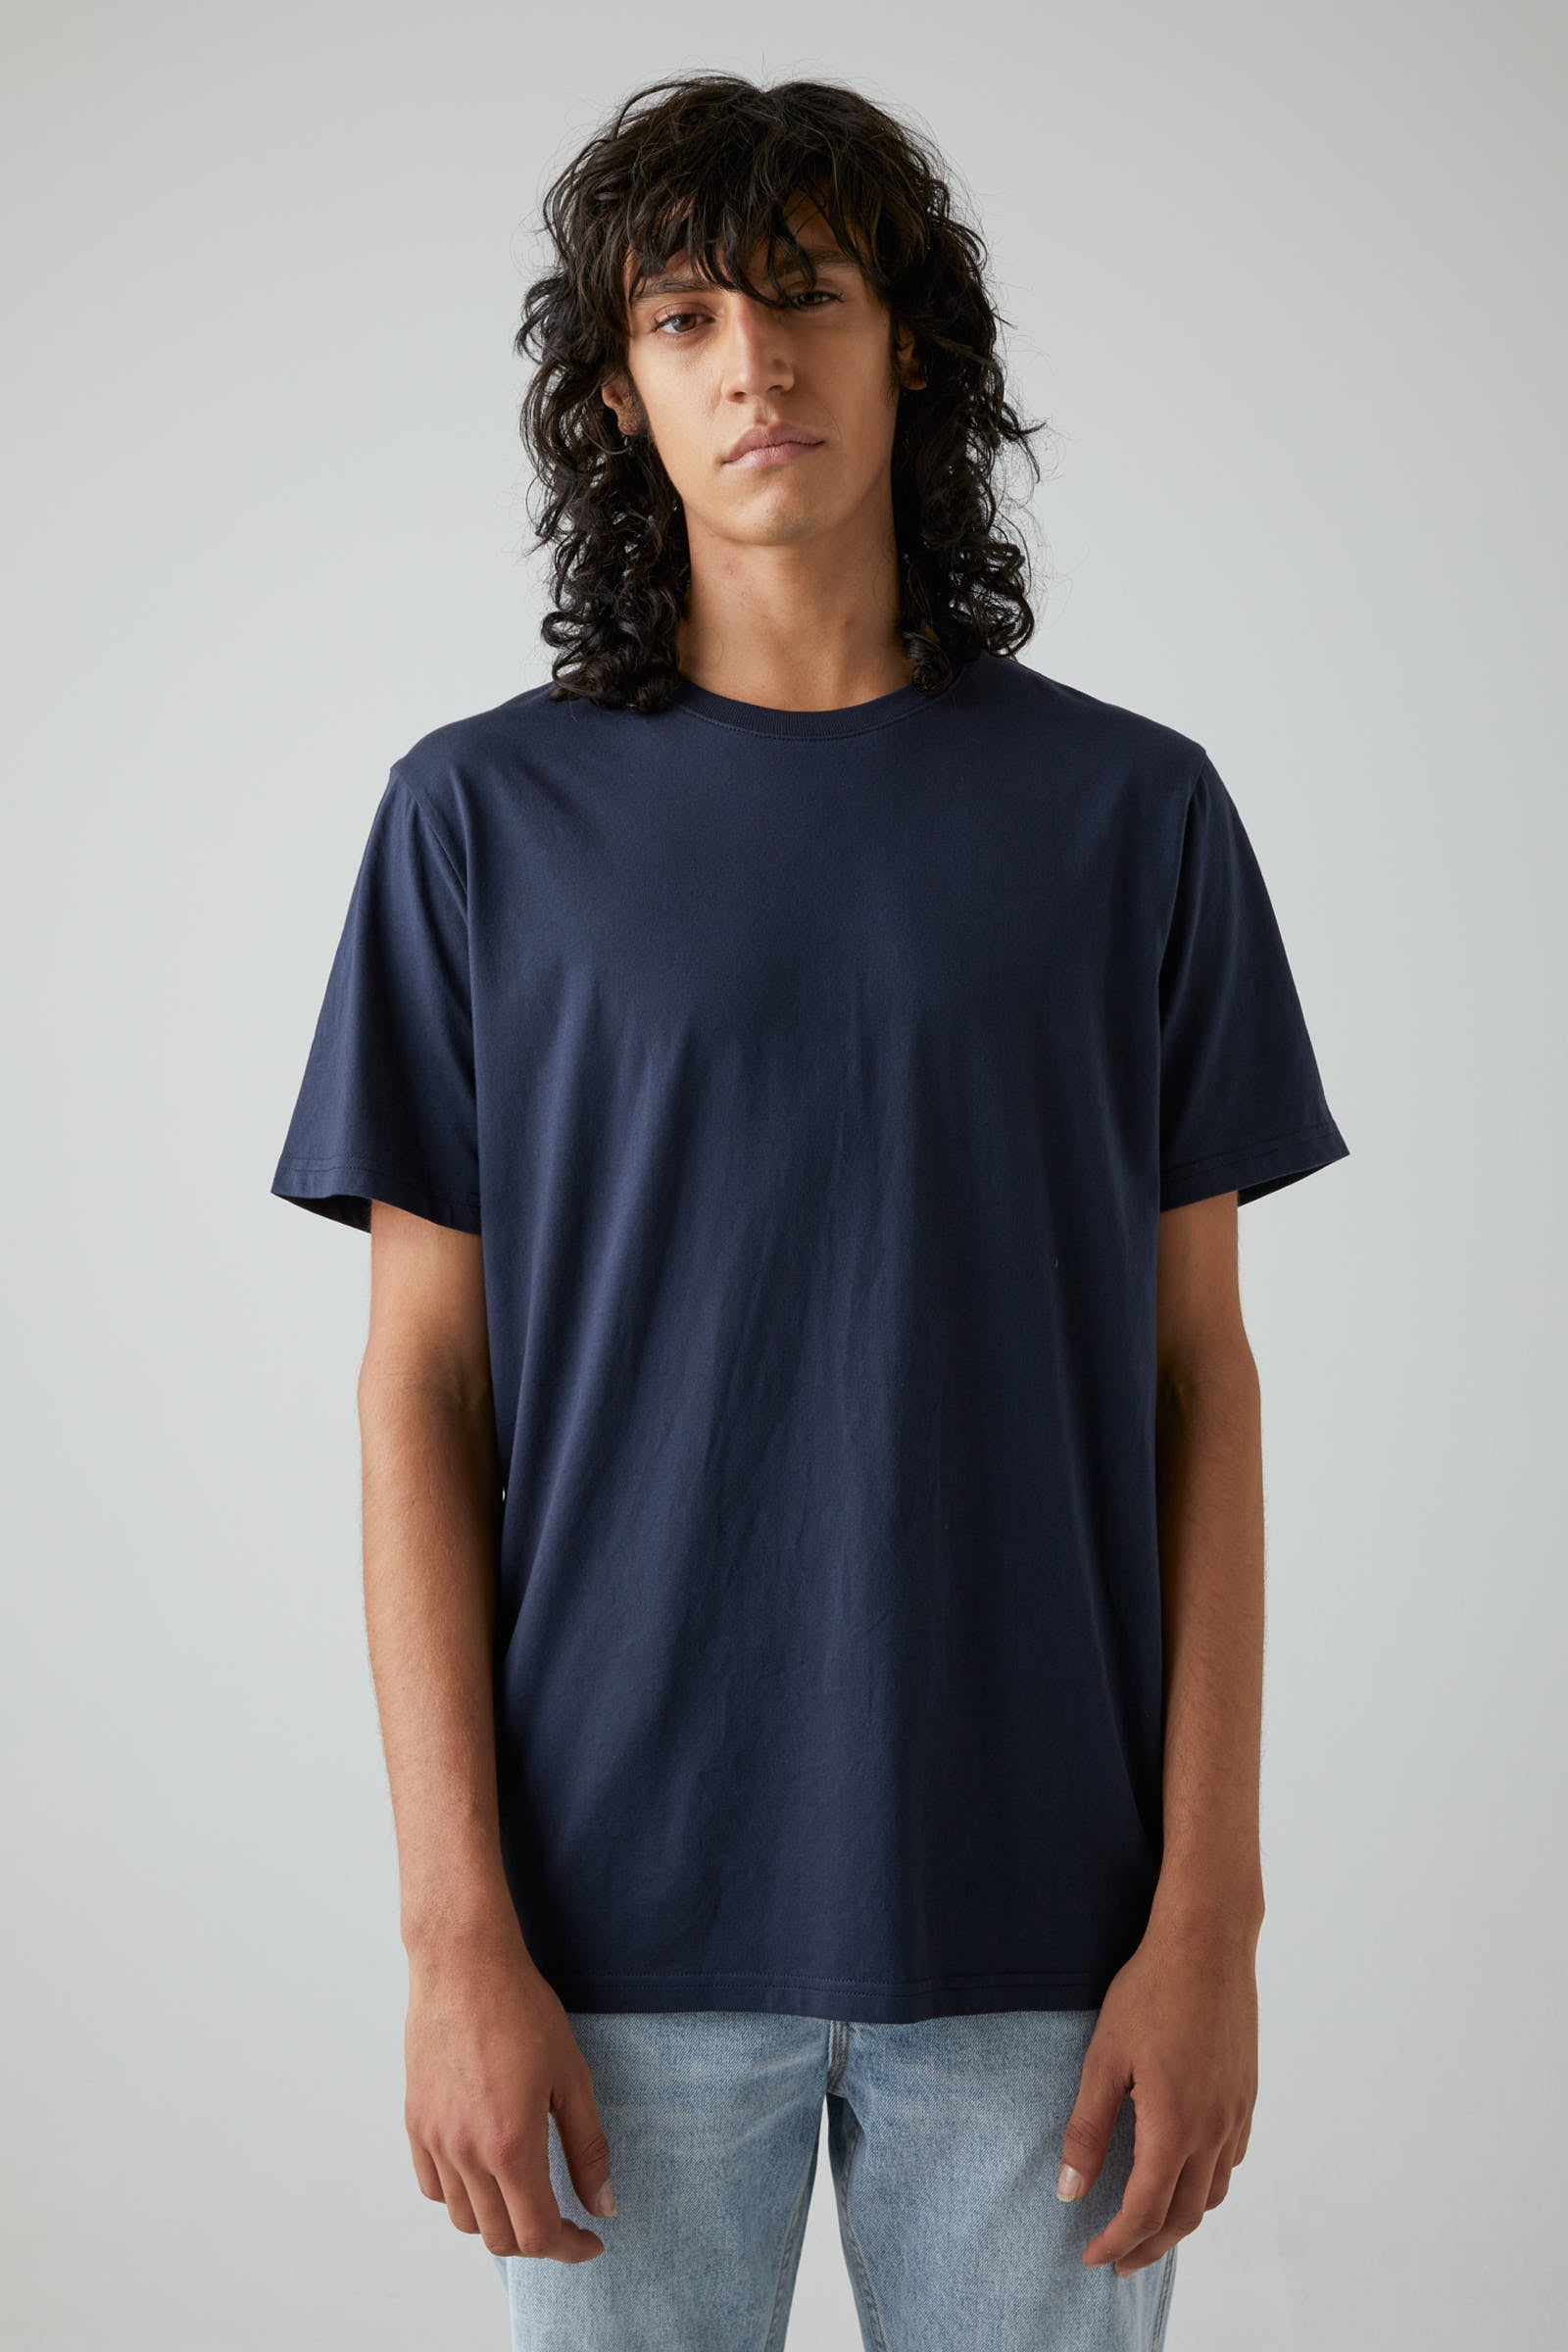 Bass Pima Tee - Navy